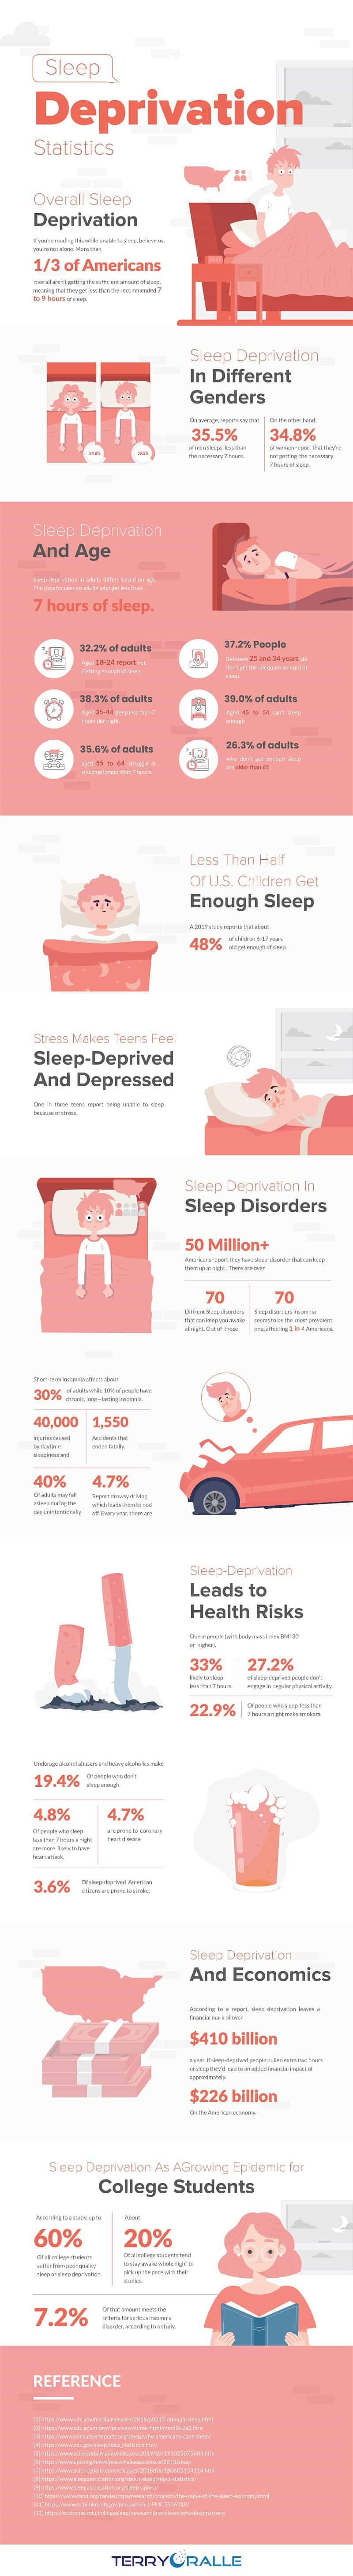 Sleep Deprivation Statistics A